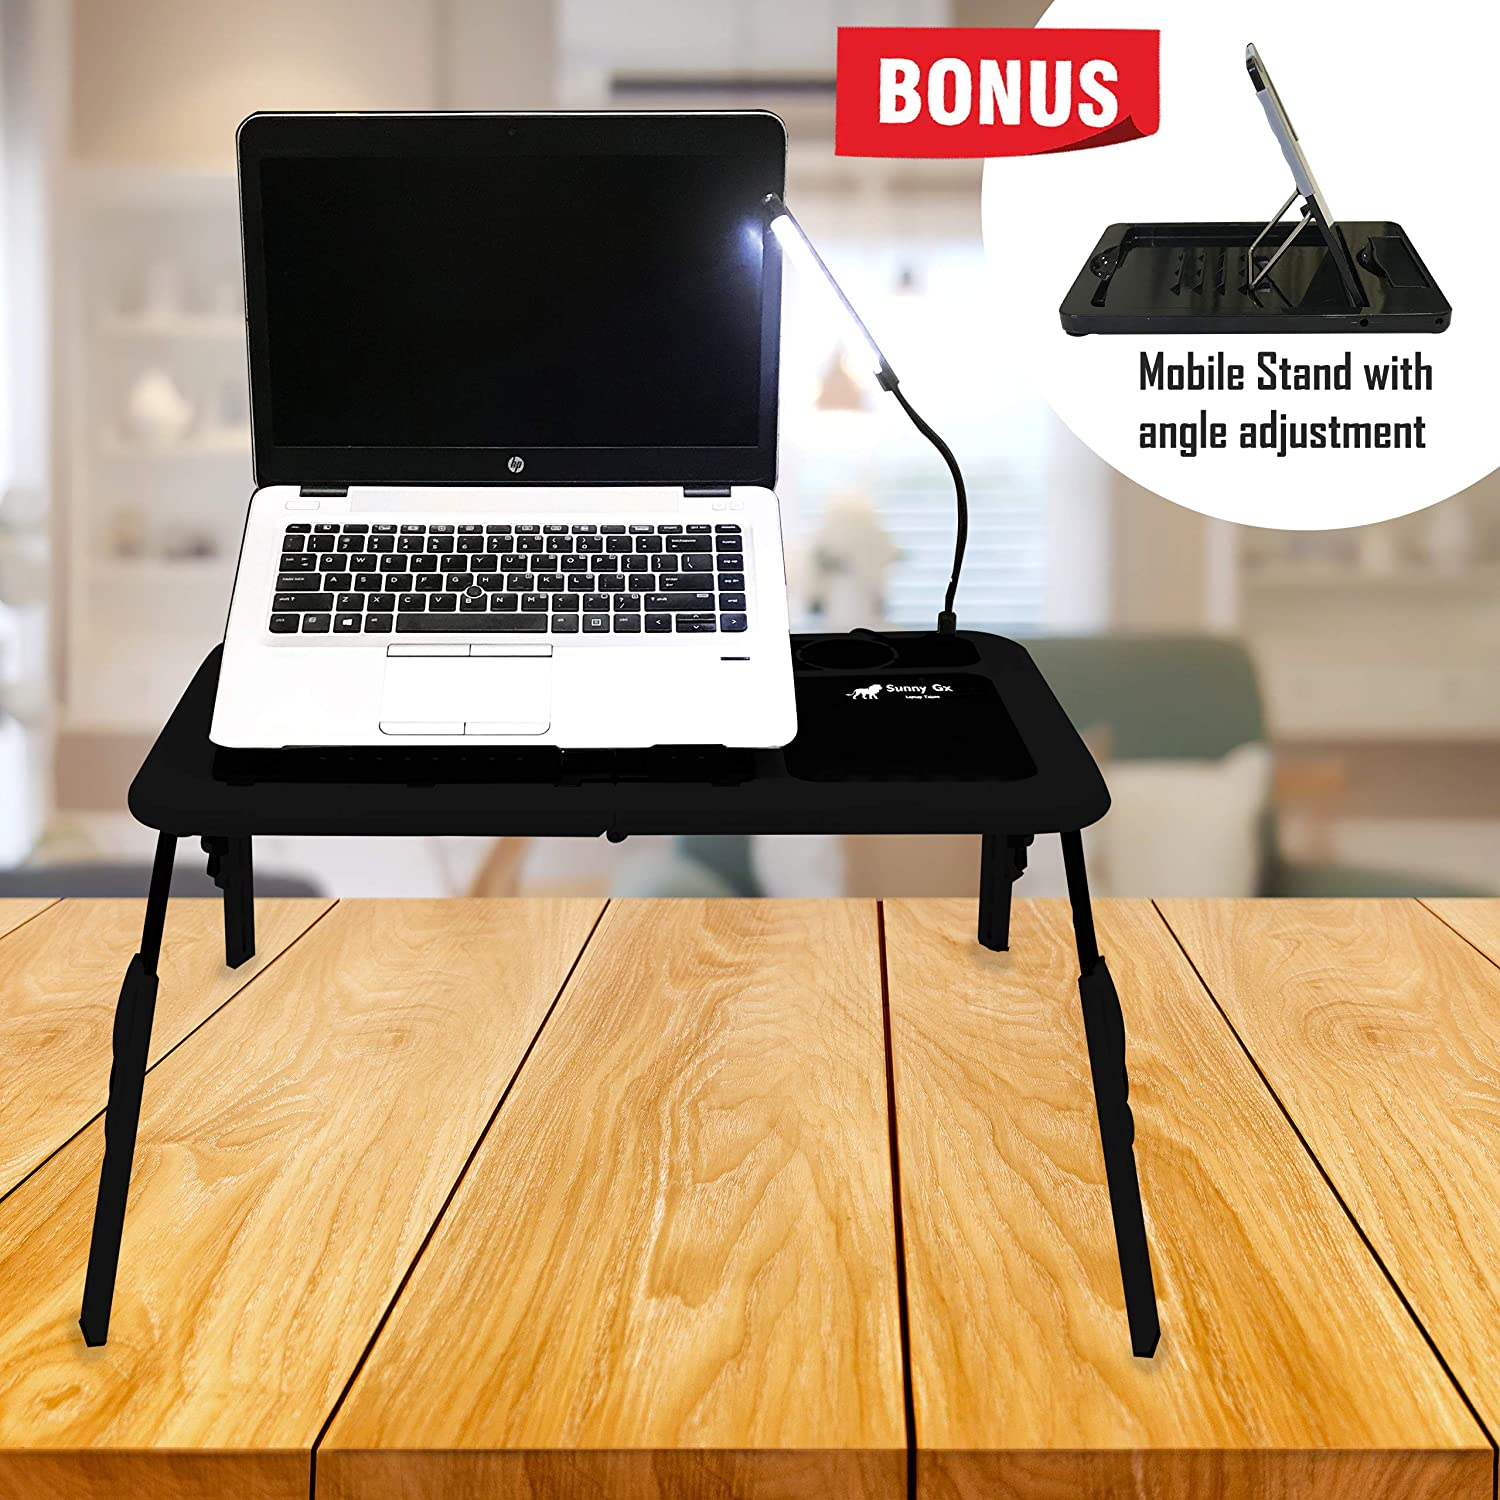 Sunny Gx Foldable Laptop Table - Laptop Desk for Bed, 4 Different Height Adjustments, 2 Cooling Fan, LED Light With Brightness Control, Foldable Bed Desk For Laptop, Writing in Sofa,Couch Wood, Black